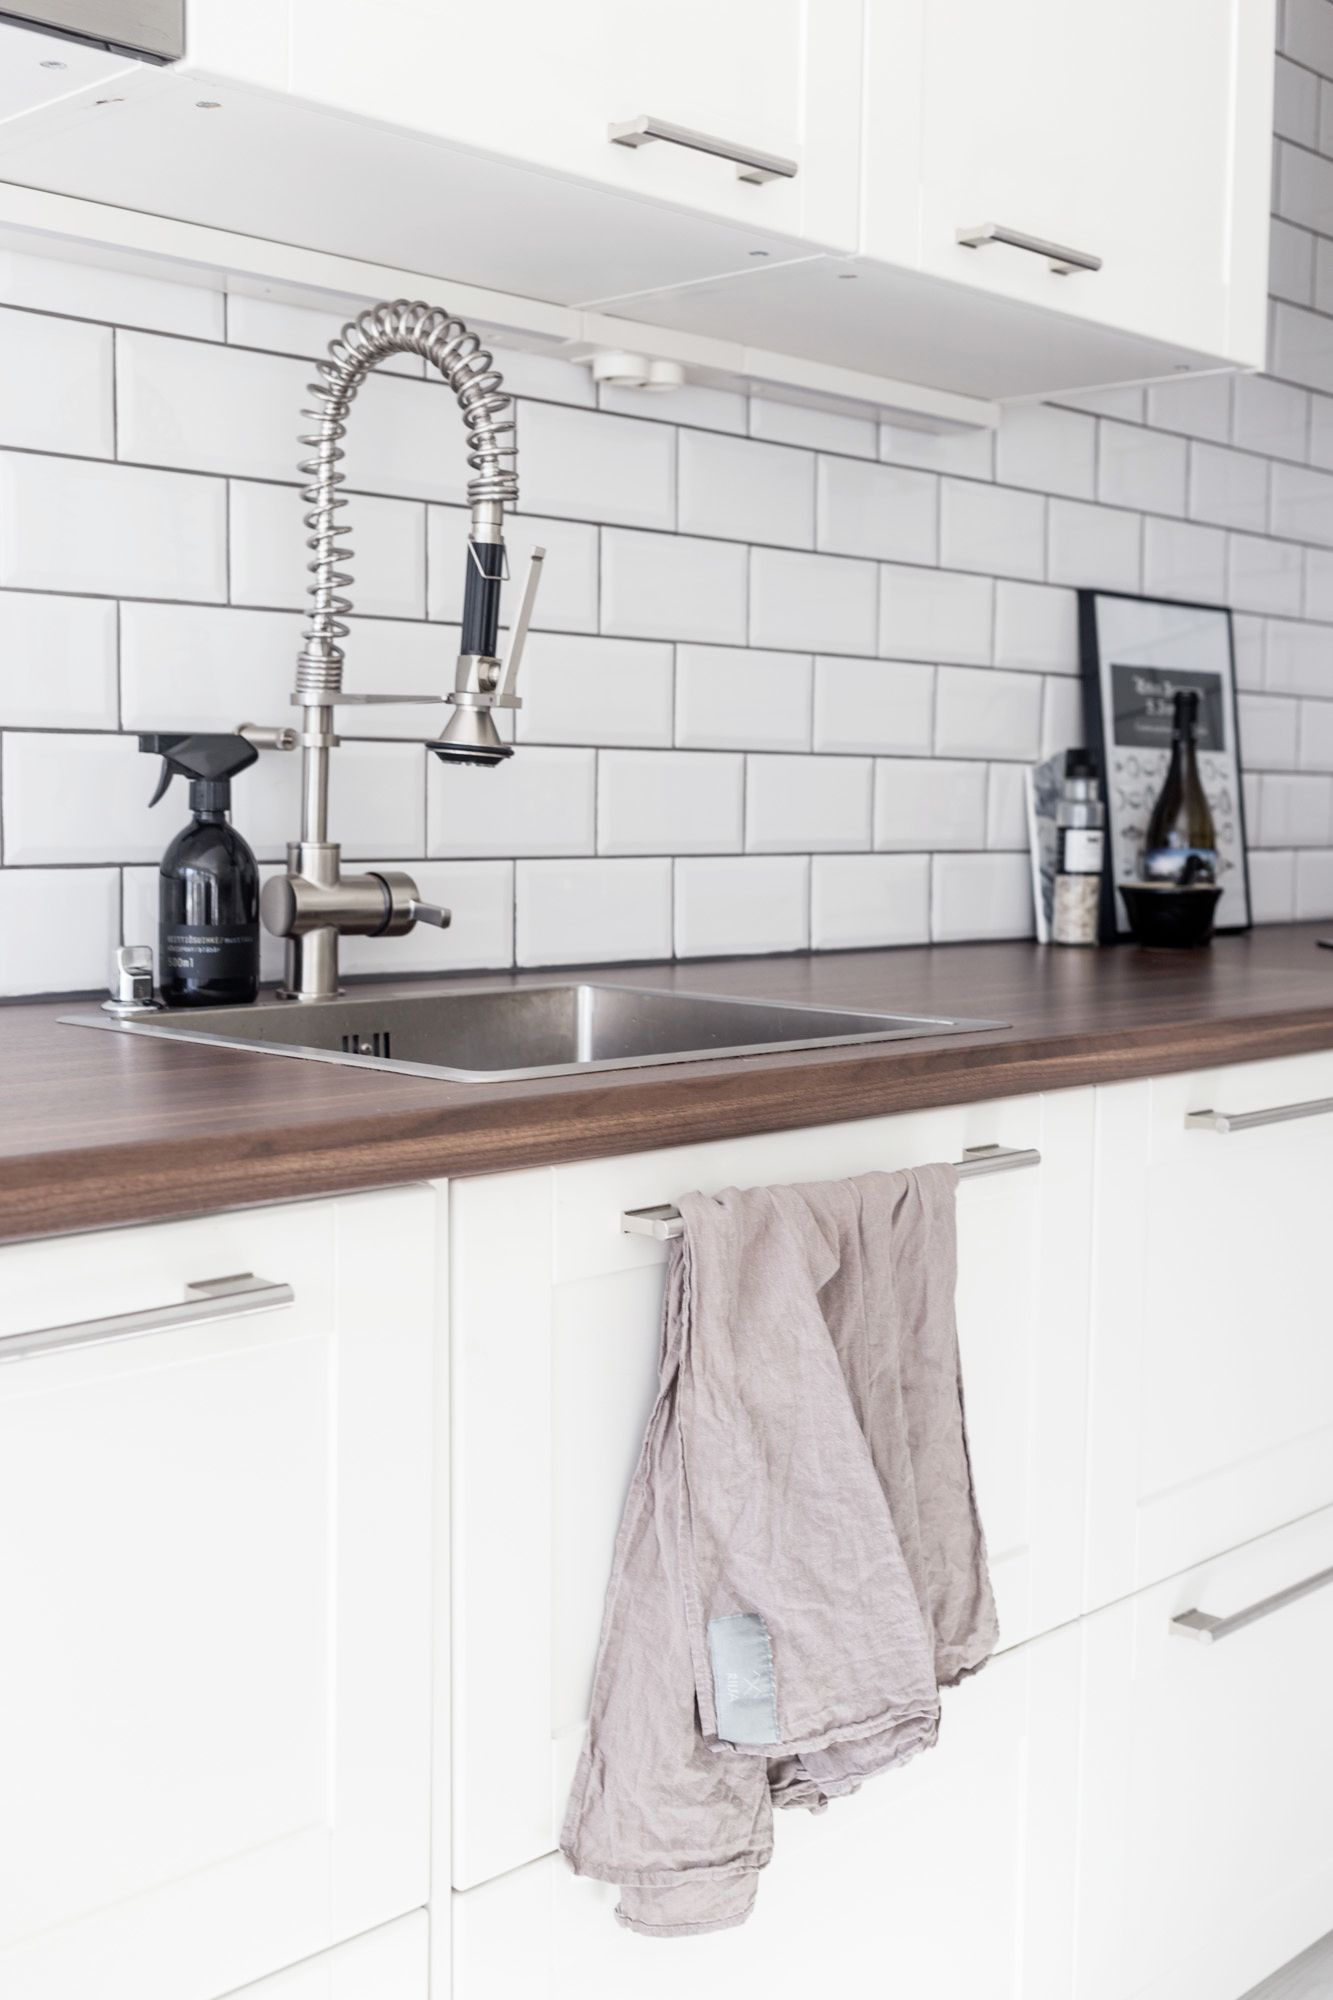 White kitchen / Subway tiles / Industrial / Noora&Noora  nooraandnoora.com